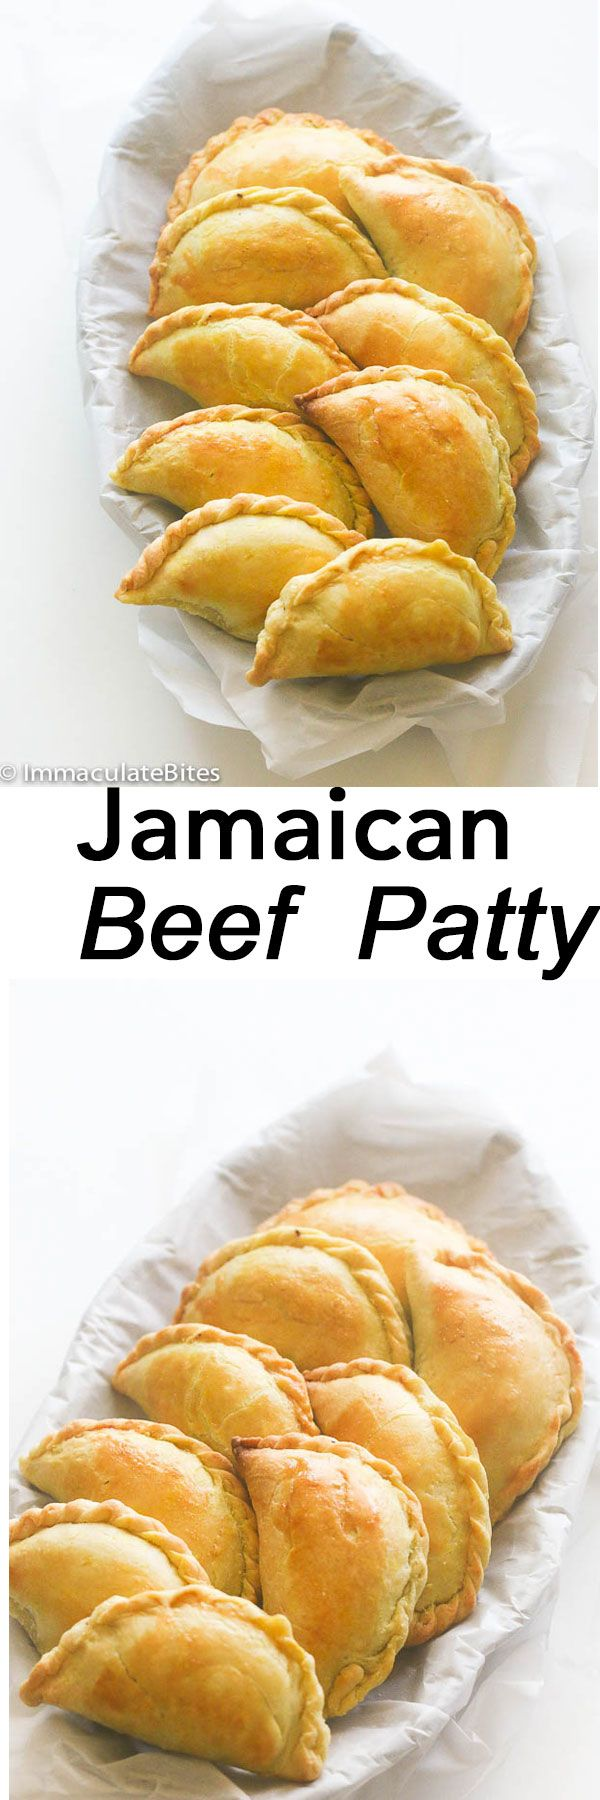 Jamaican Beef Patty – Spicy flavorful beef stuffed in an amazing super easy buttery dough.Comes together quickly and flies off the table. Simply Delicious!!! Ma